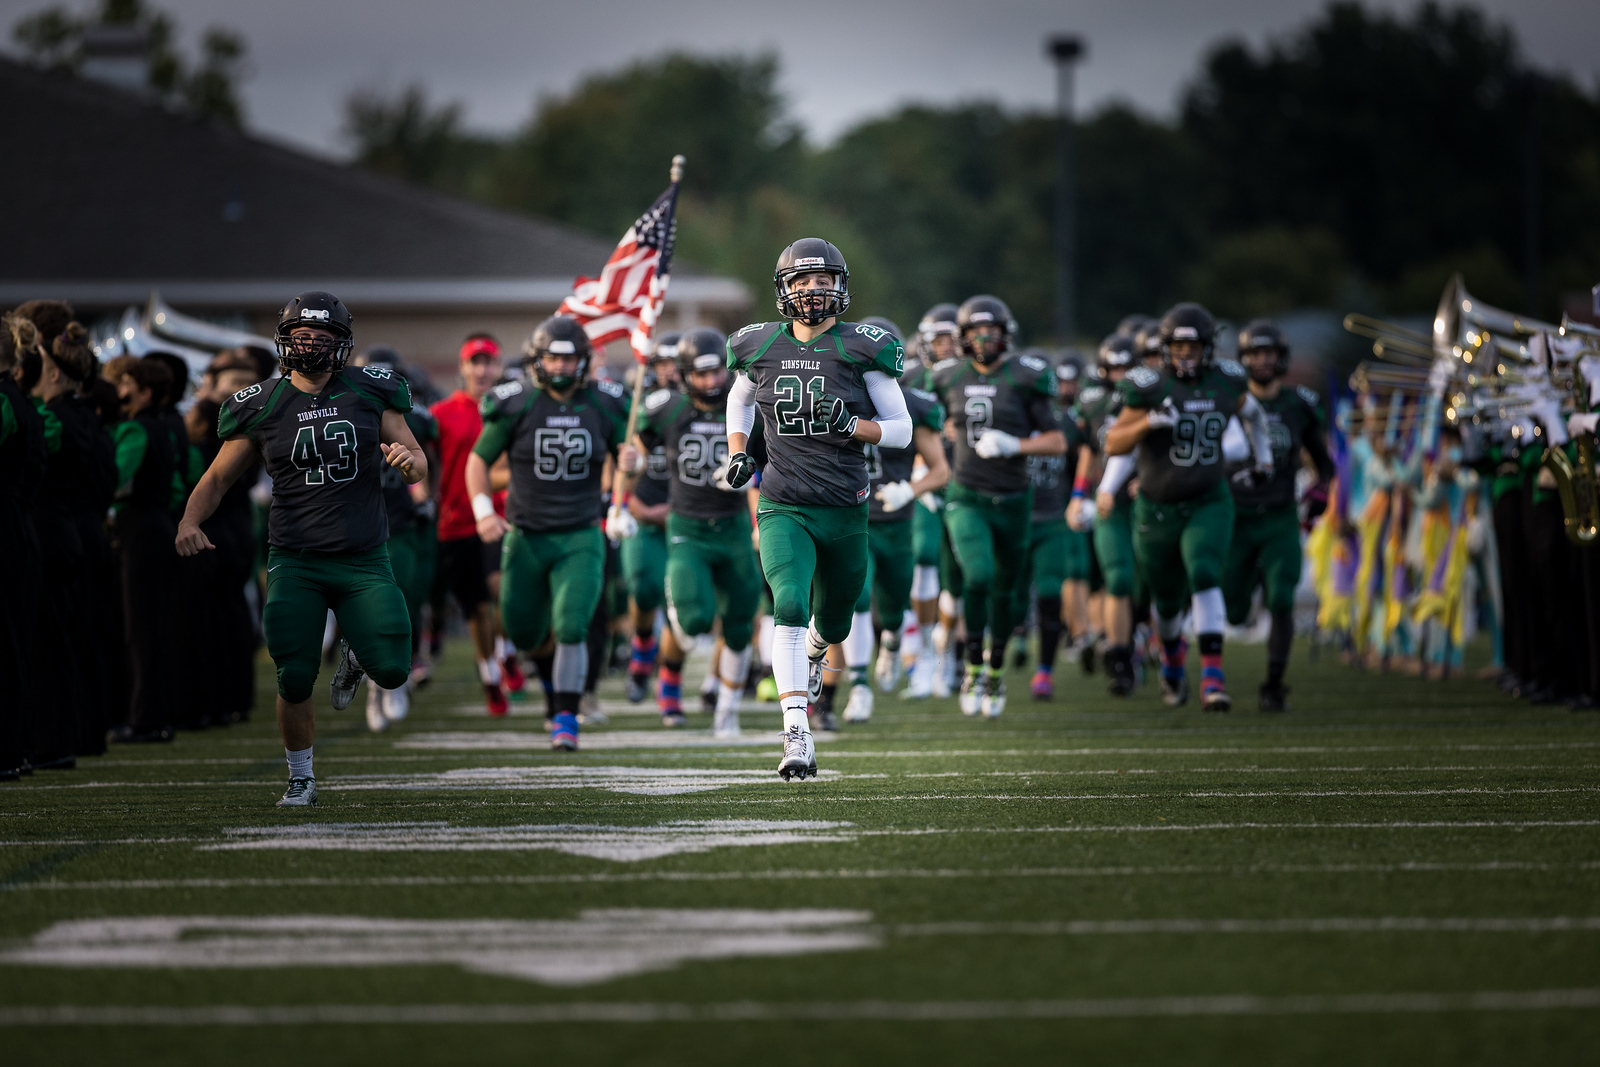 My best football entrance shot. This shot does not work if Scott didn't separate himself from the pack. The flag in the background is a nice touch as well. This one even made the inside cover of the yearbook.